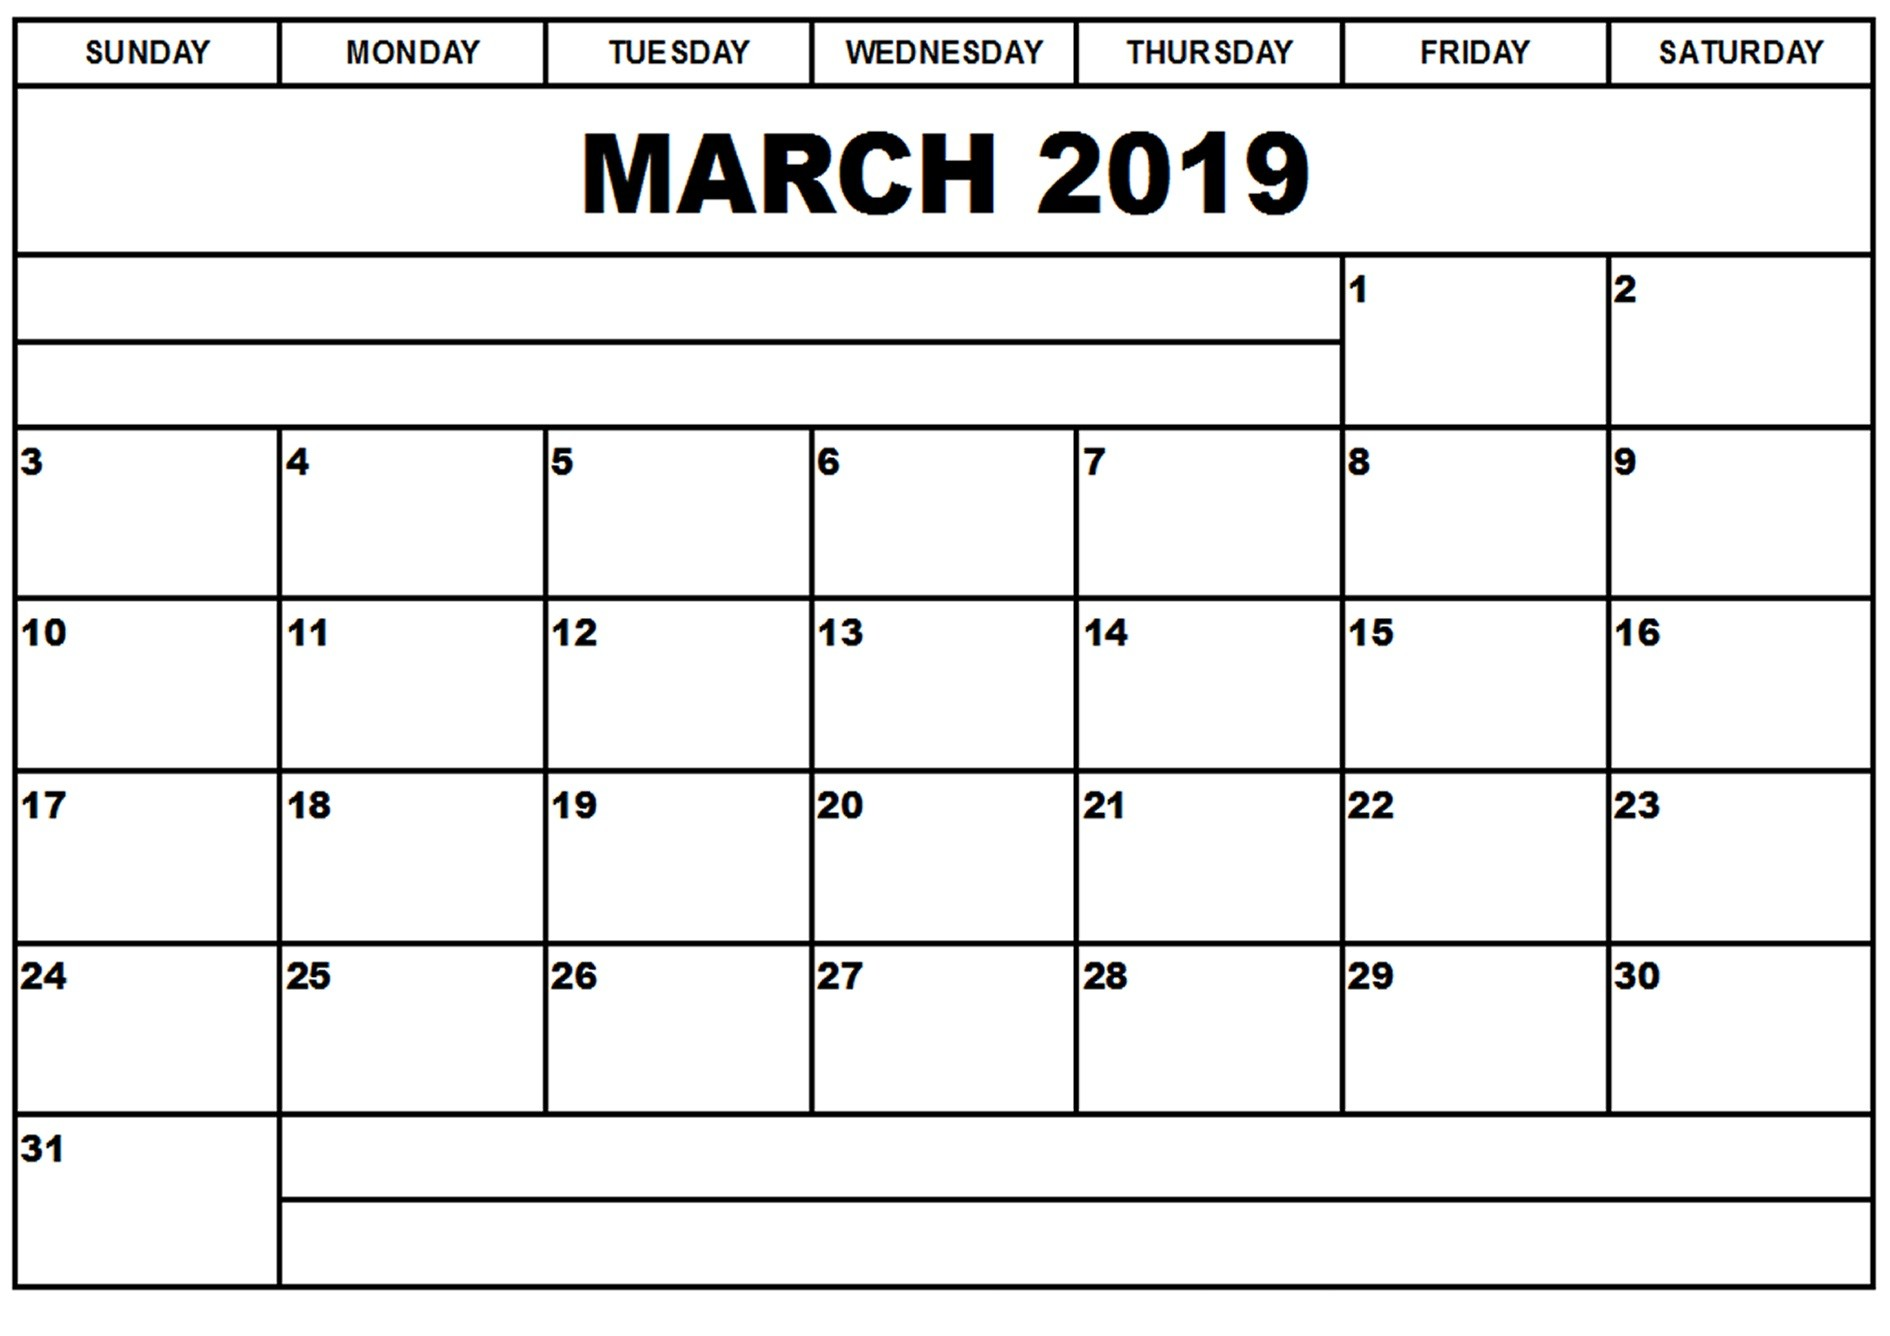 March Calendar 2019 Recientes March 2019 islamic Calendar – March 2019 Calendar Printable Of March Calendar 2019 Más Recientes March 2019 Wall Calendar Colorful Sketch Horizontal Template Letter